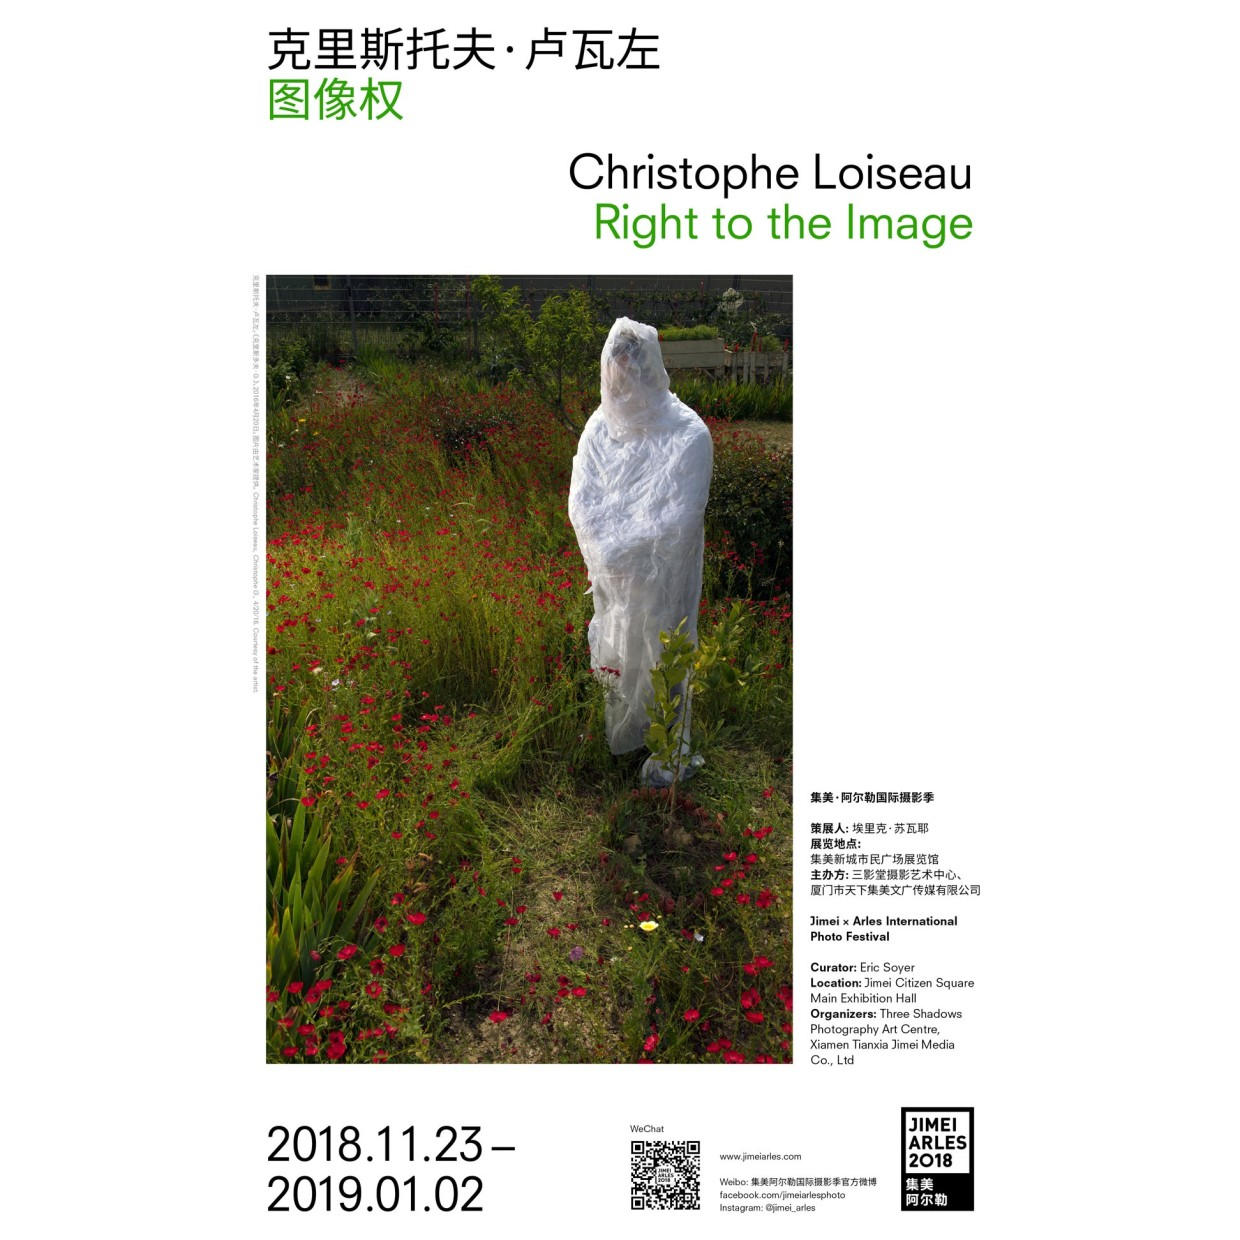 CHRISTOPHE LOISEAU RIGHT TO THE IMAGE CURATED BY ERIC SOYER In 2015, the supervisors of Arles' penitentiary decided to offer...